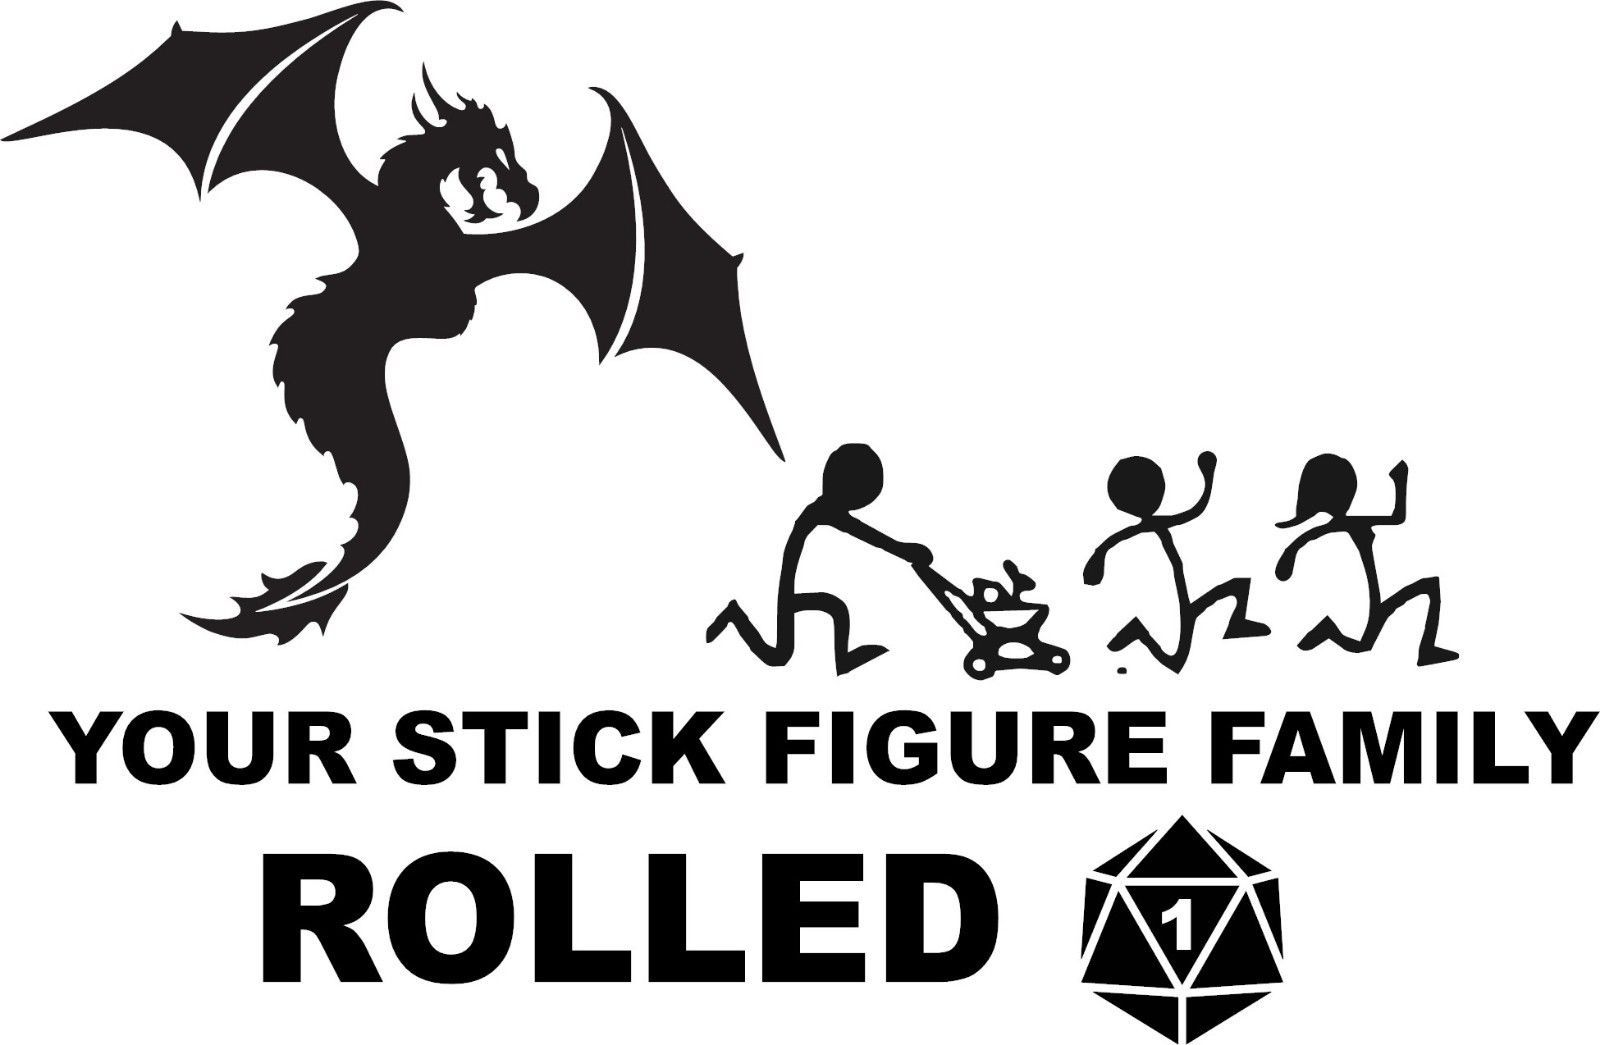 Dungeons And Dragons Stick Figure Family Vinyl Decal Car 6 5 X4 2 D D Dnd Crit Dungeons And Dragons Dungeons And Dragons Art Stick Figure Family [ 1045 x 1600 Pixel ]